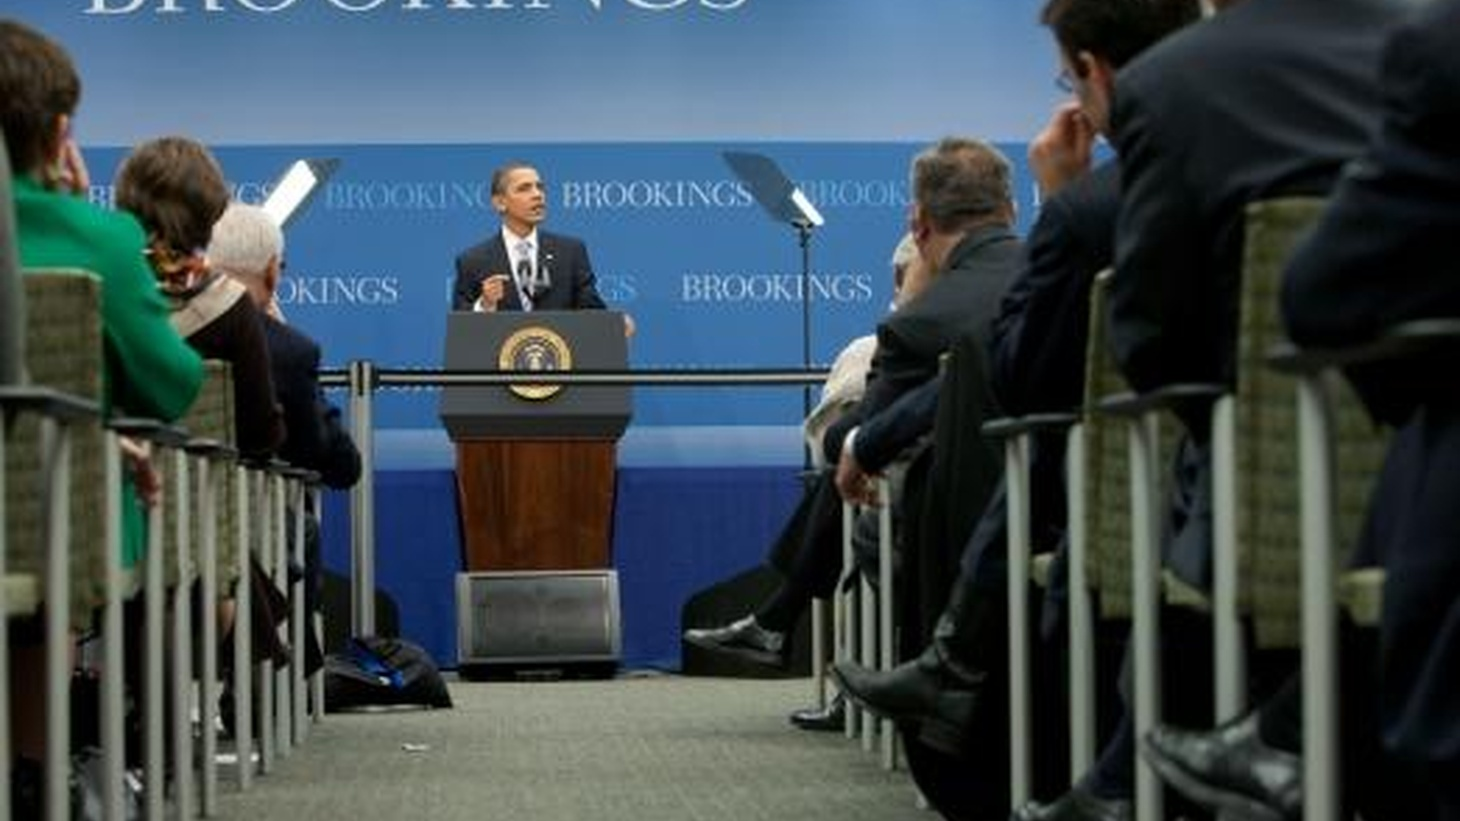 On his way to Europe to pick up his  Nobel Prize , President Obama addresses some controversial issues. He commended Senate Democrats for their agreement on one of the most controversial aspects of healthcare reform. Yesterday, he announced that he wants to use unspent TARP bailout money to help create jobs.